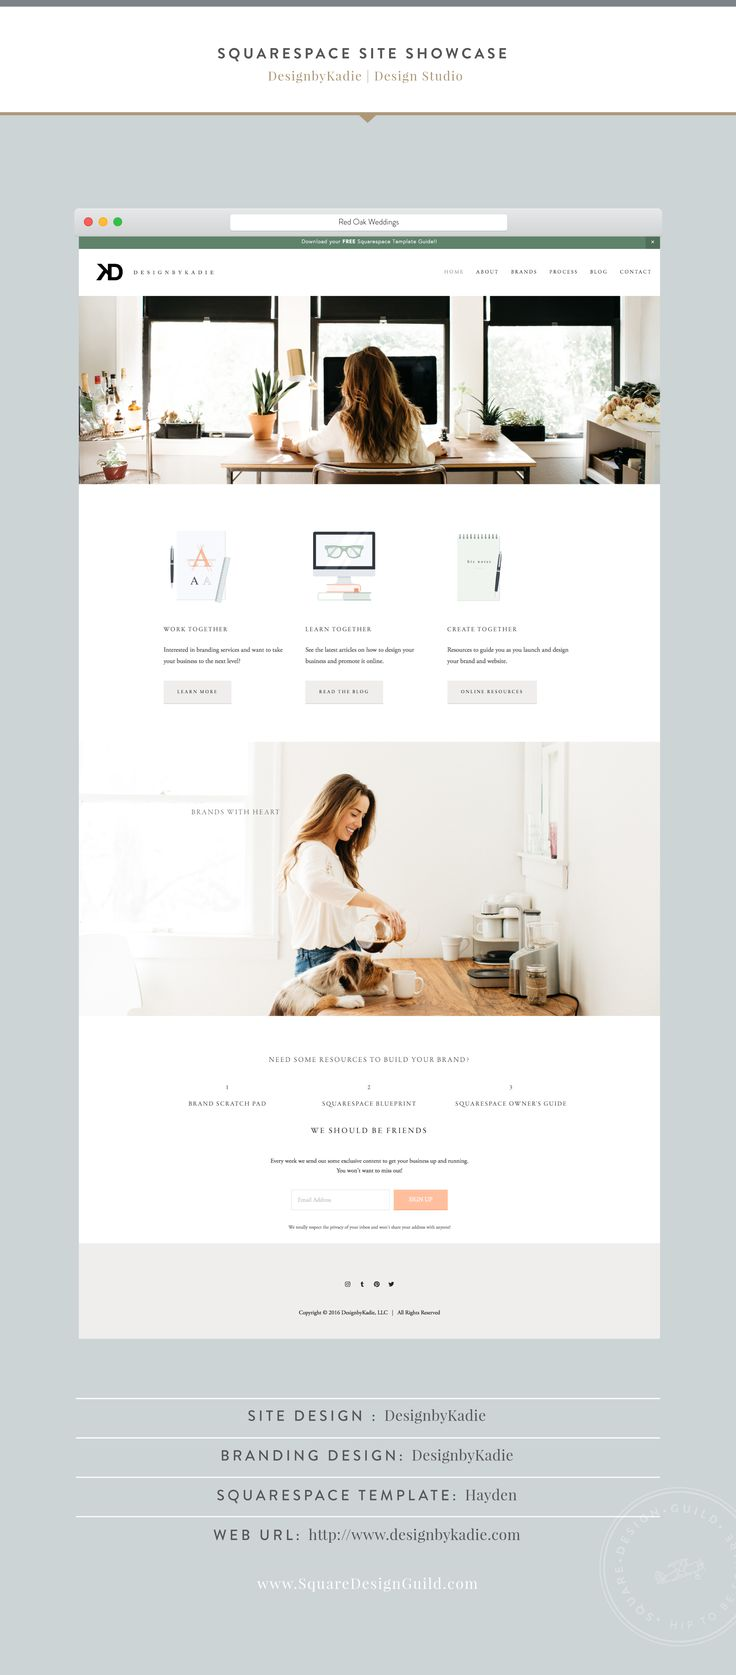 Squarespace Design Guild | Site Showcase - DesignbyKadie Boutique Graphic Design Studio in Dallas TX